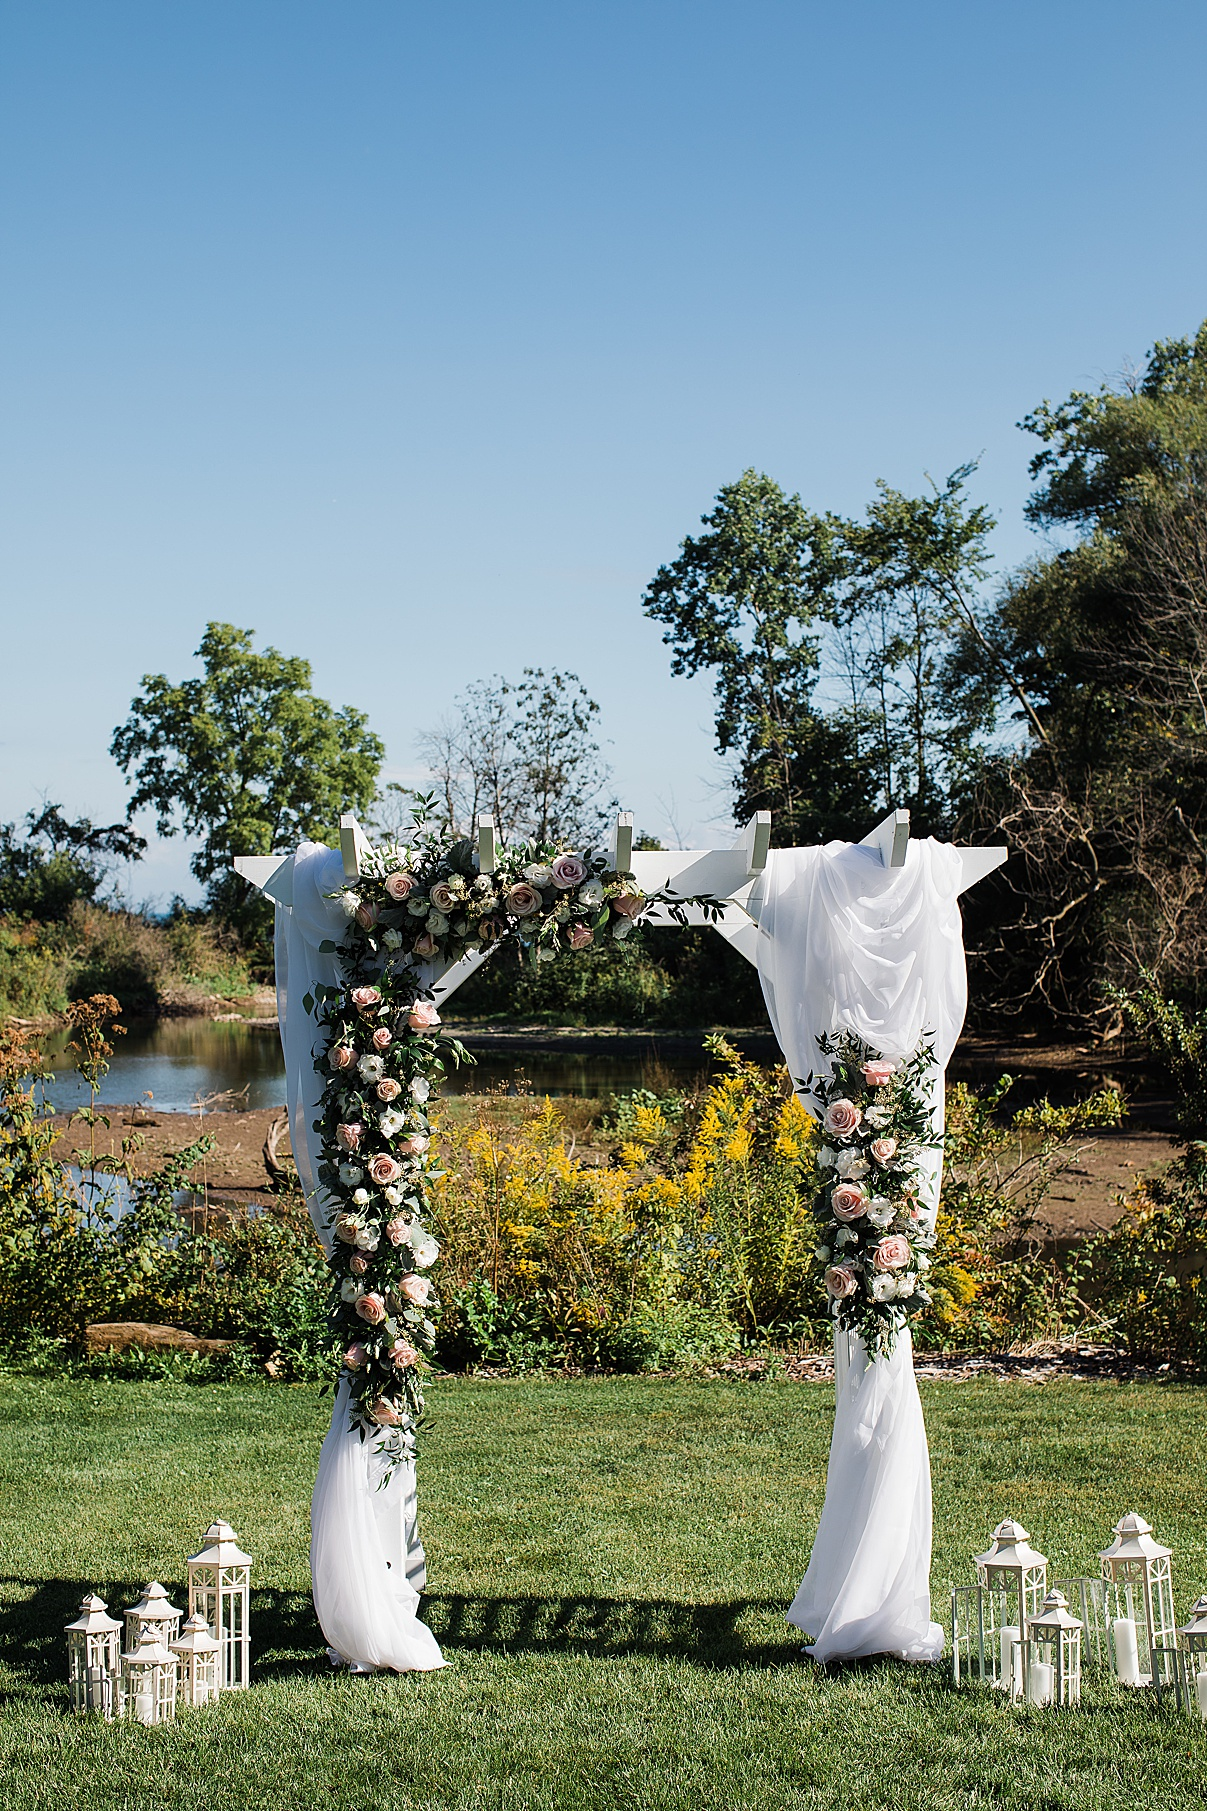 Floral wedding arch| Harding Waterfront Estate Wedding| Ontario wedding photographer| Toronto wedding photographer| 3 Photography | 3photography.ca